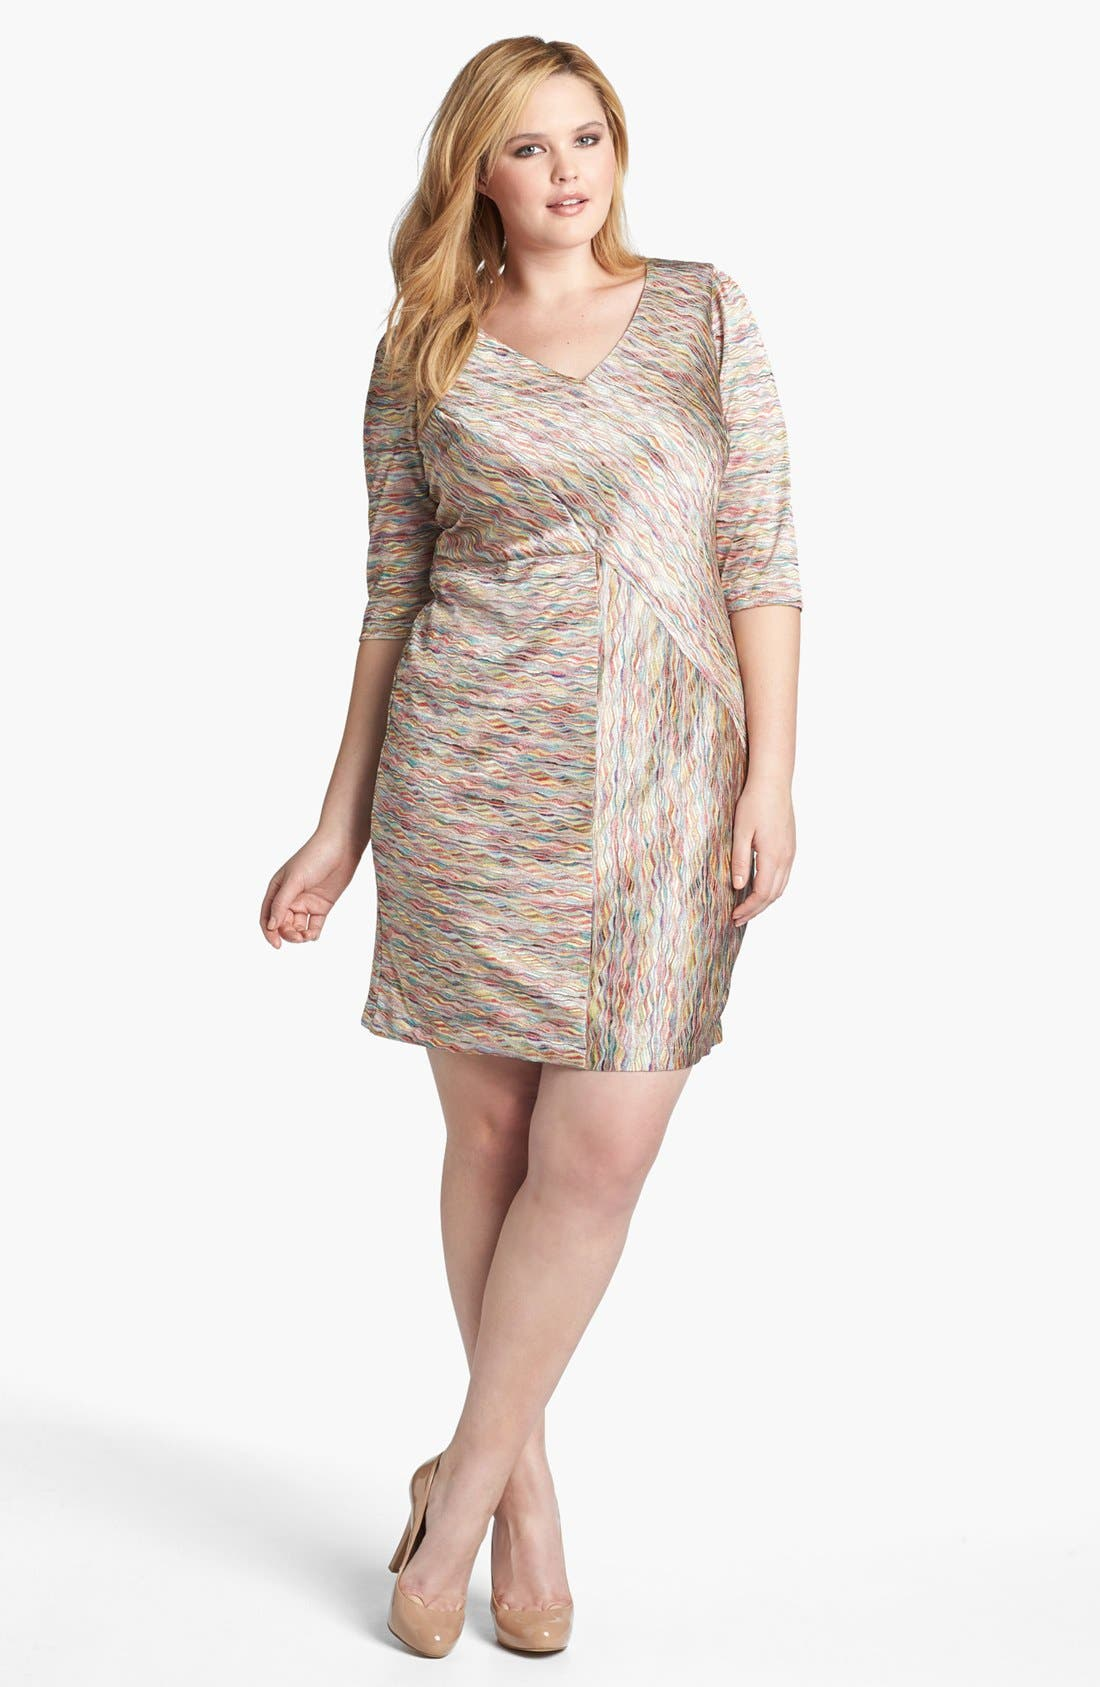 Alternate Image 1 Selected - London Times Seamed Knit Sheath Dress (Plus Size)